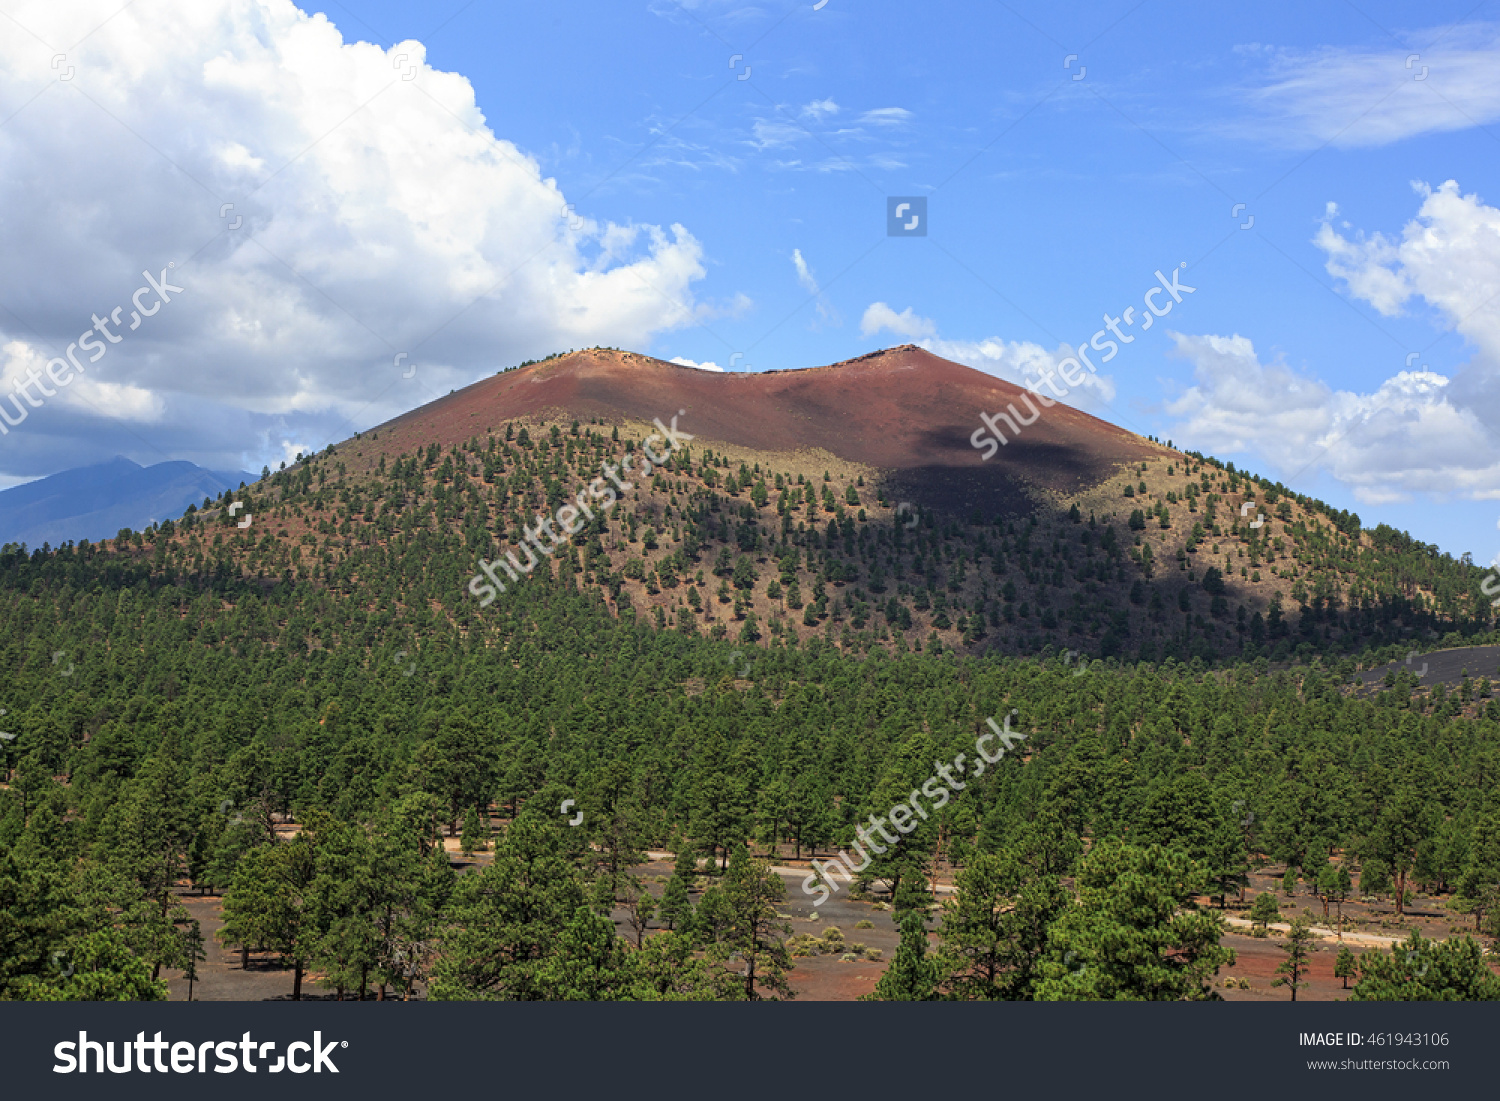 Sunset Crater, A Cinder Cone Volcano Located North Of Flagstaff.